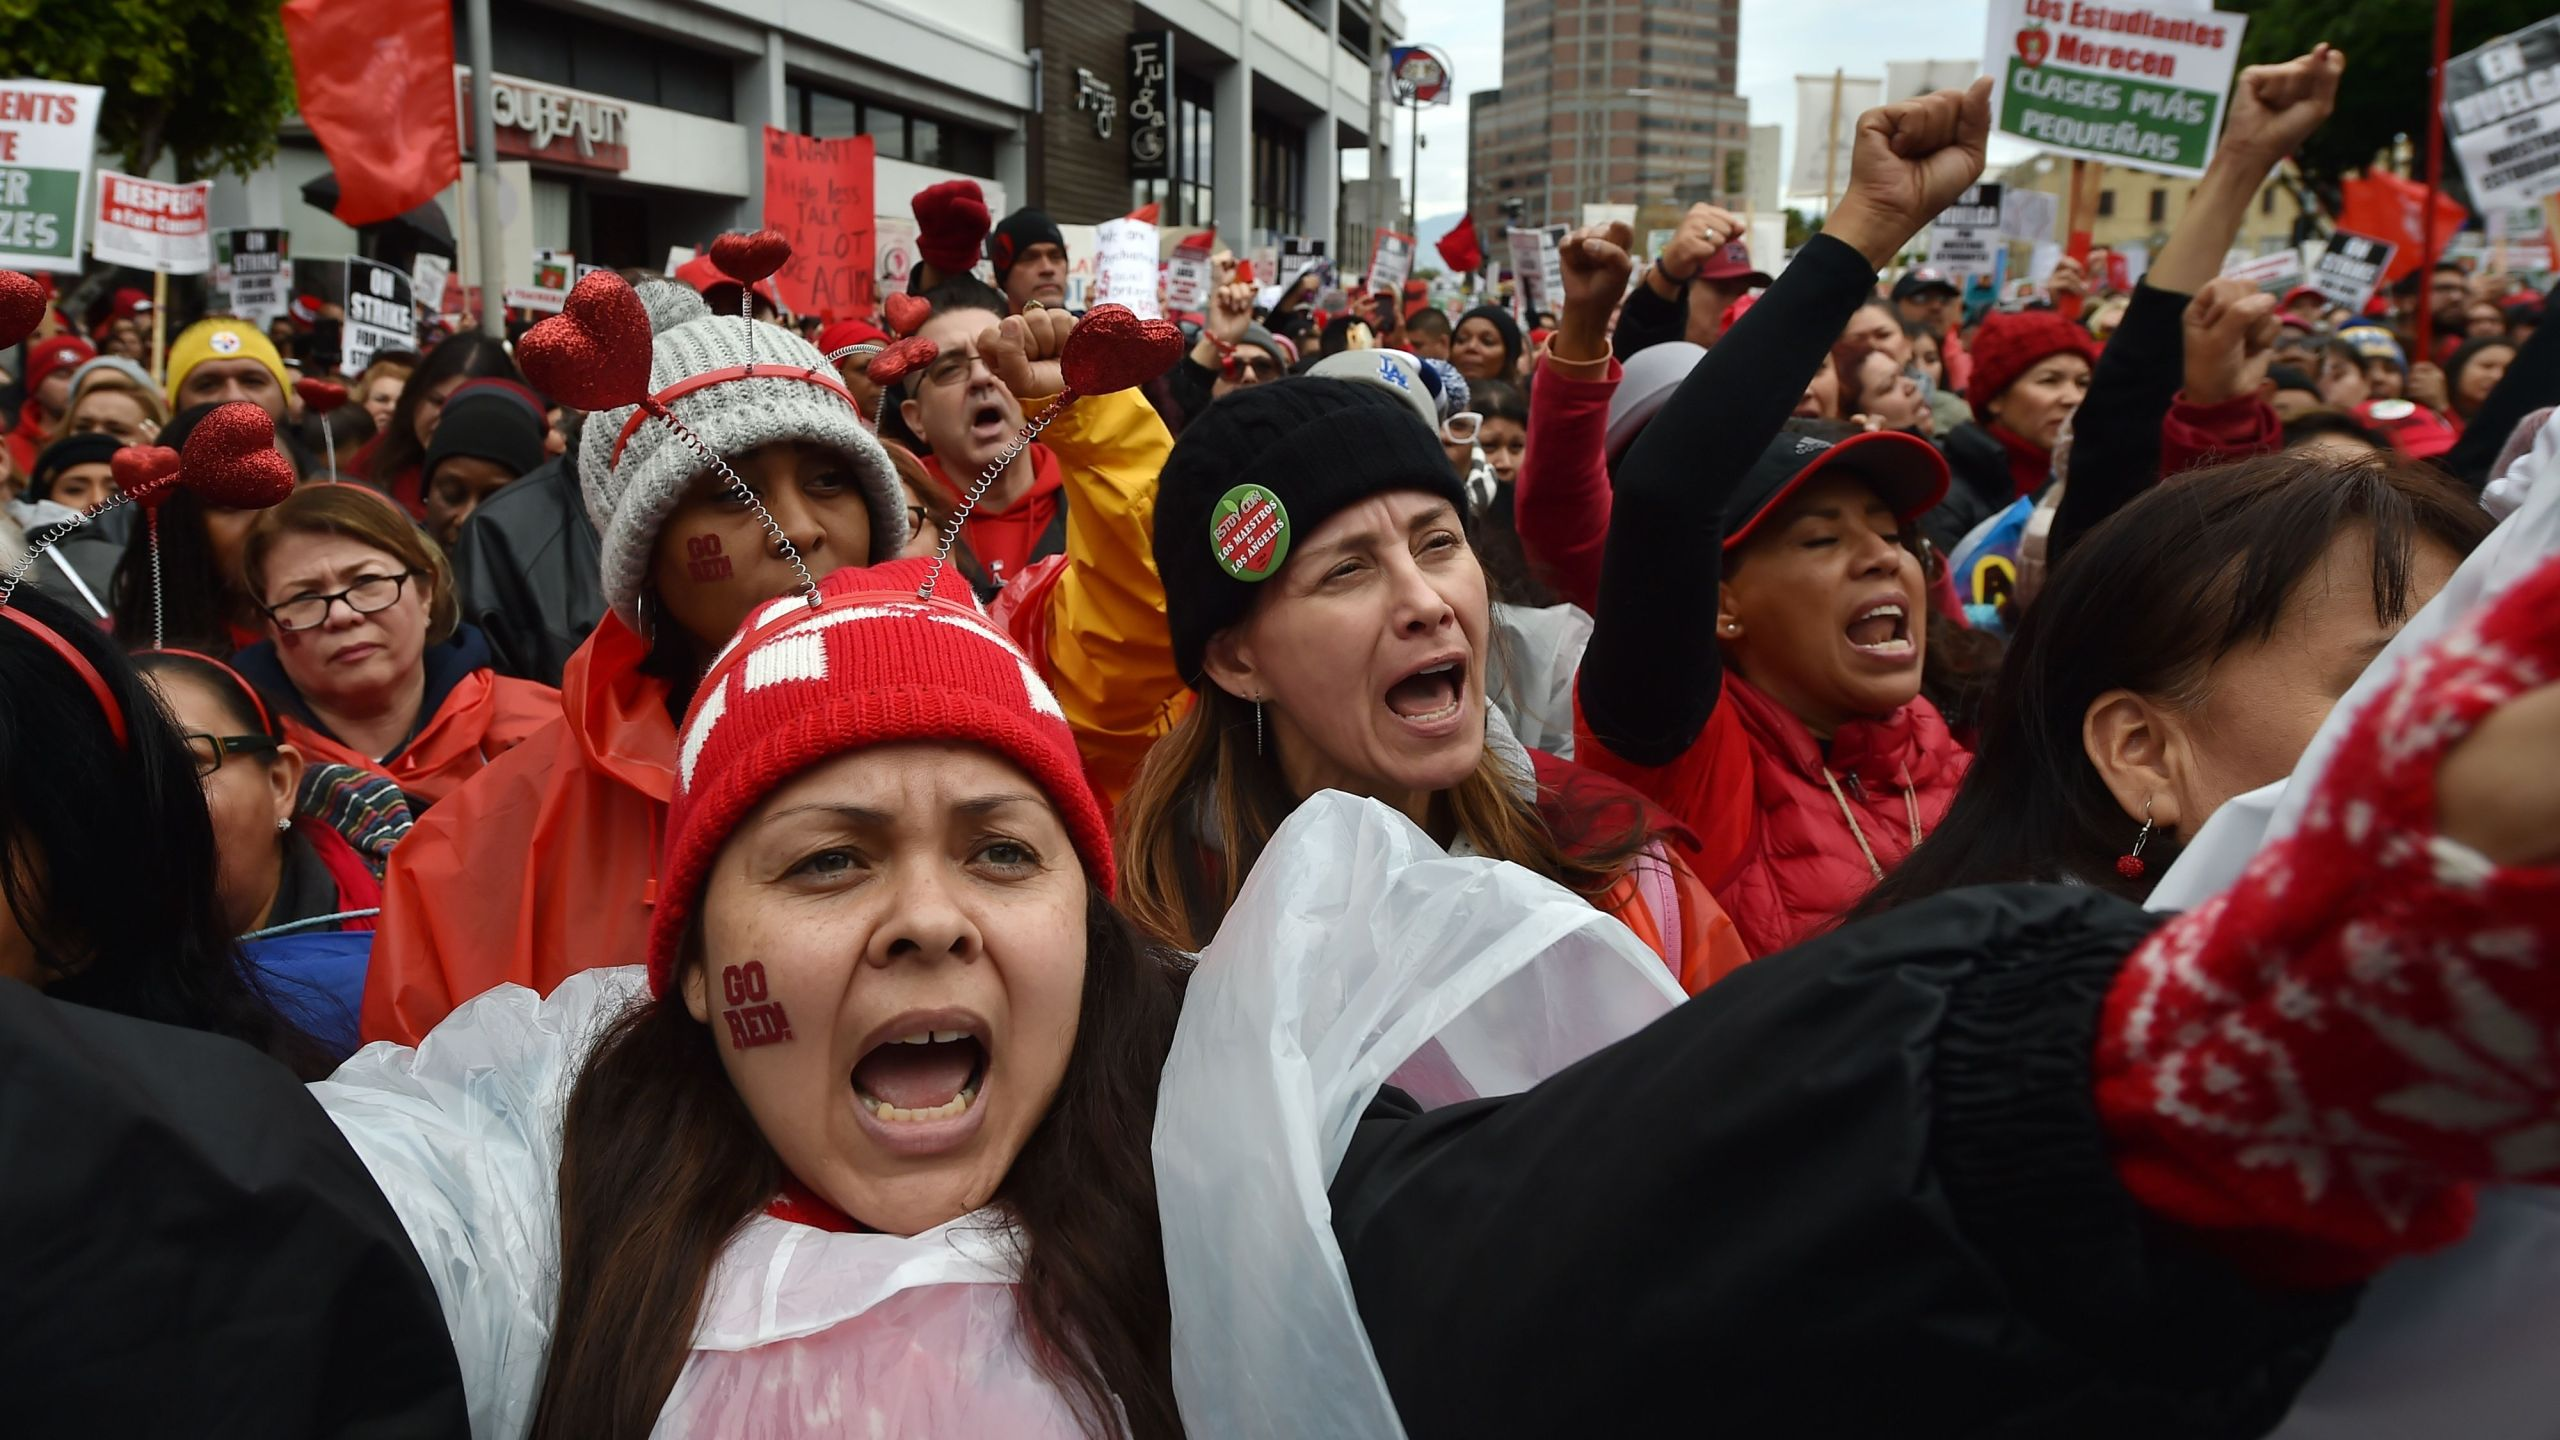 Striking teachers and their supporters rally in downtown Los Angeles on the second day of the teachers strike on Jan. 15, 2019. (Credit: Robyn Beck / AFP / Getty Images)